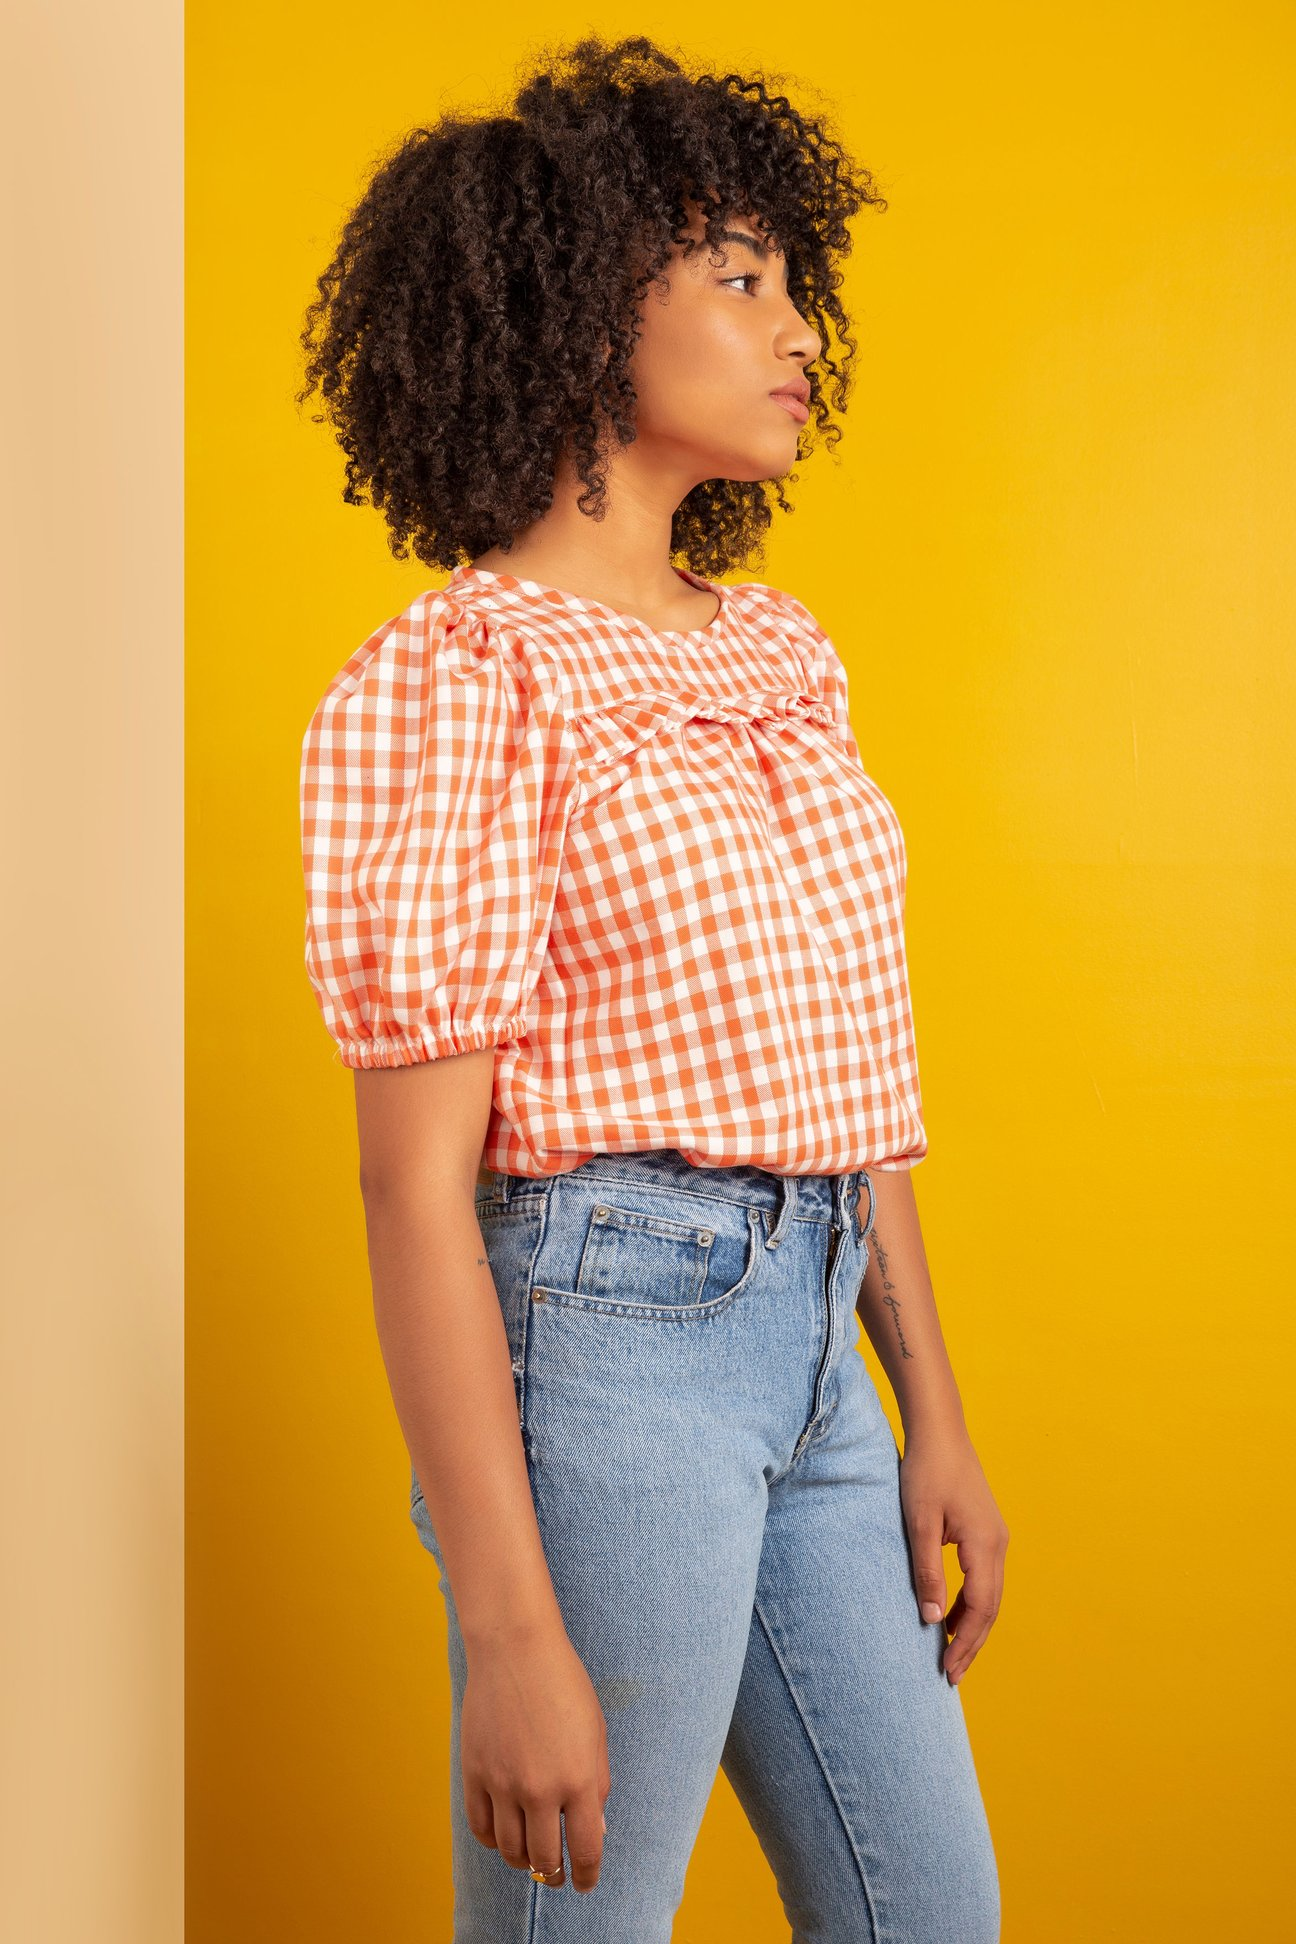 Sagebrush top by Friday Pattern Company